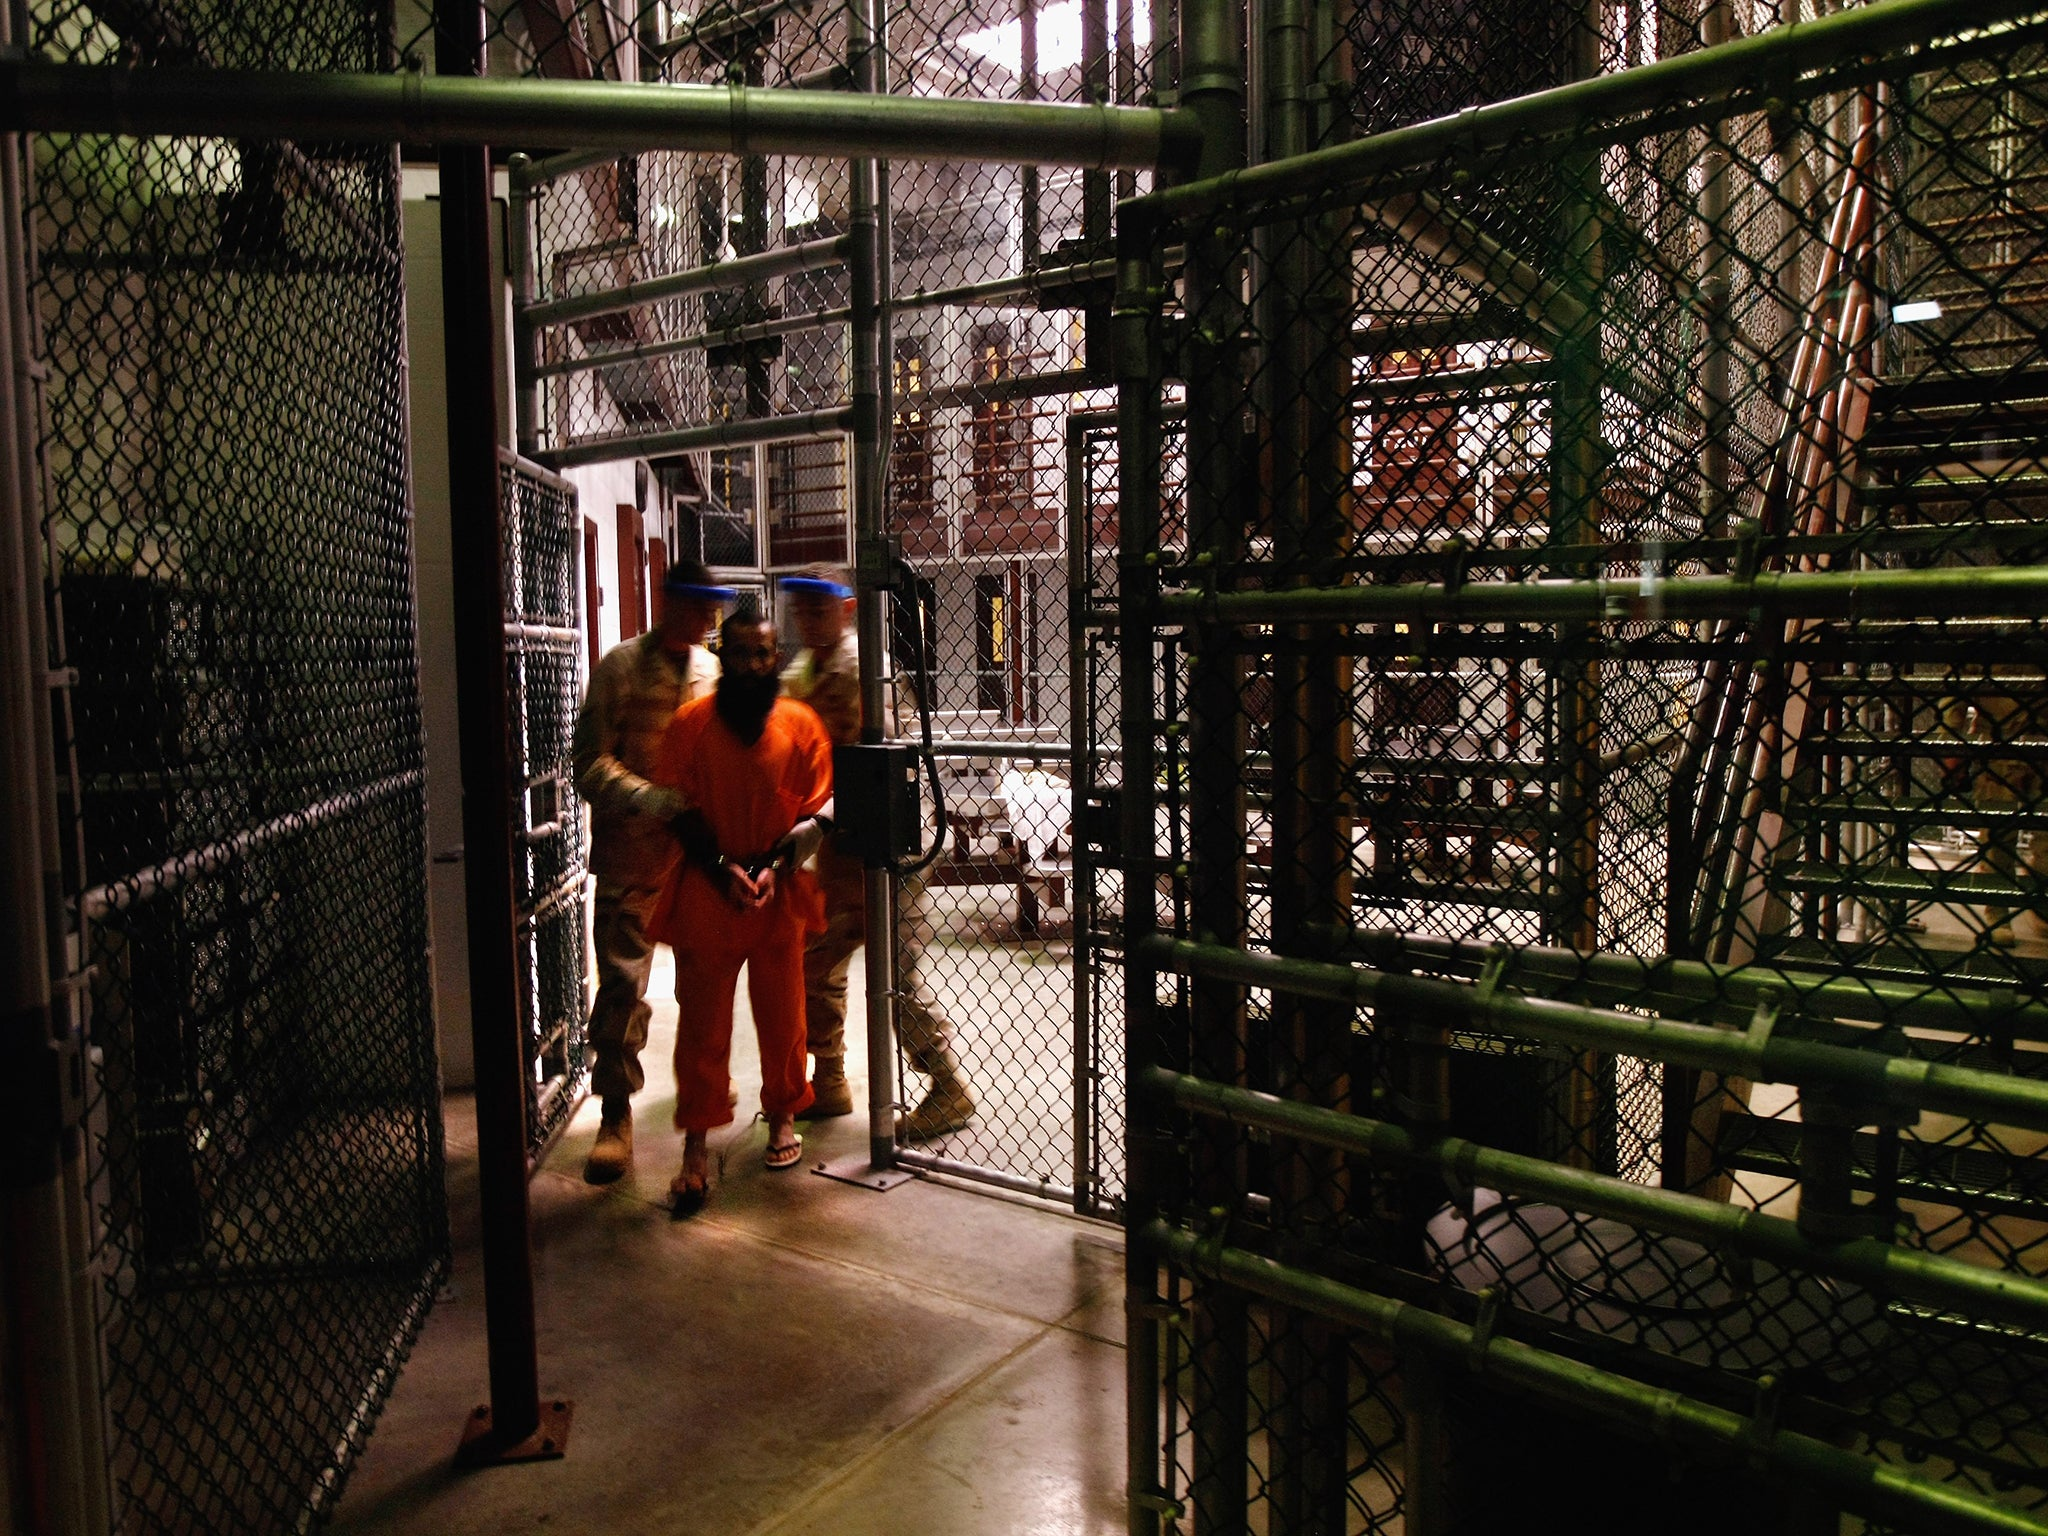 a summary of jackie speiers article guantanamo prison is wasteful and un american shut it down